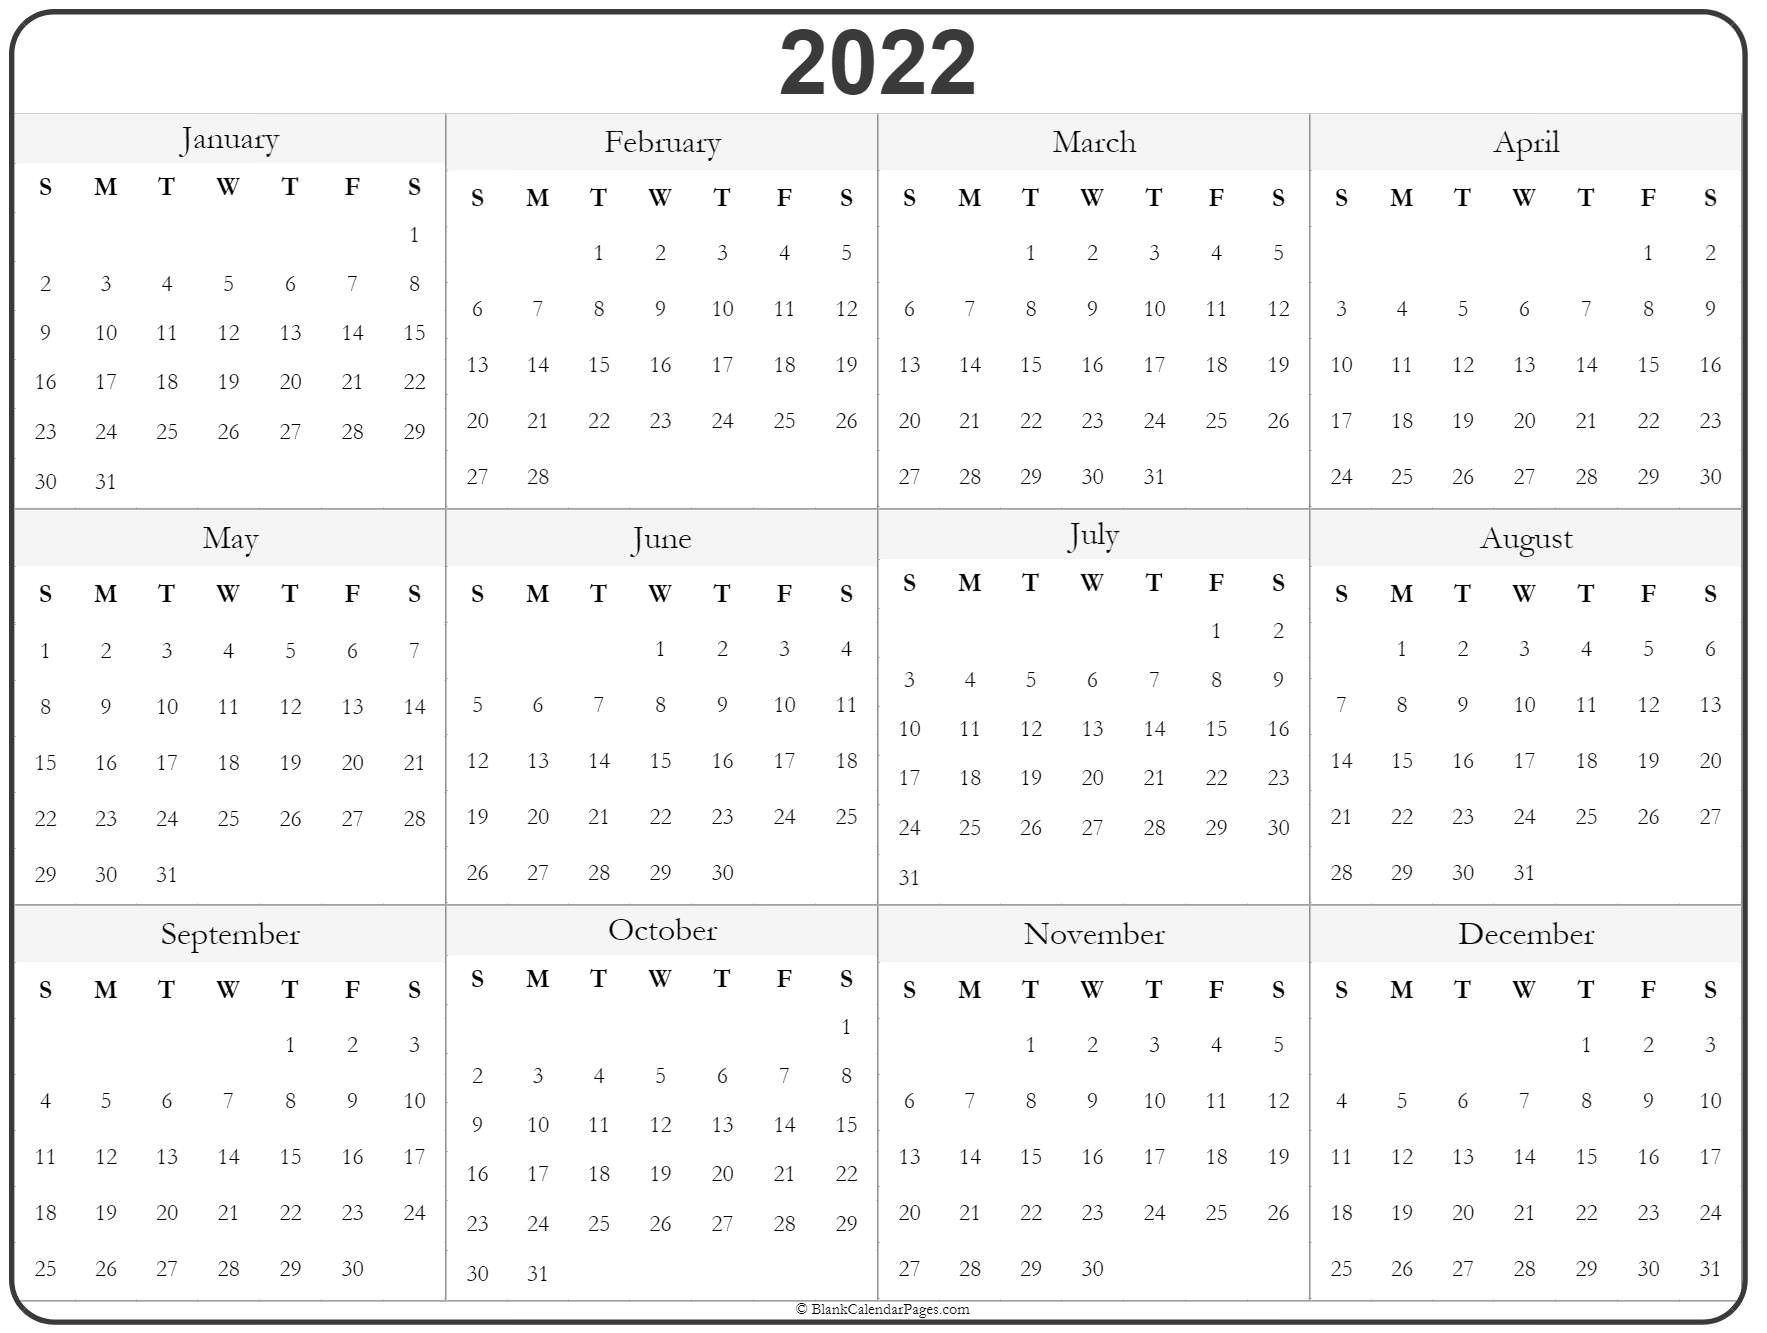 photo regarding 2022 Calendar Printable identified as 2022 yr calendar annually printable